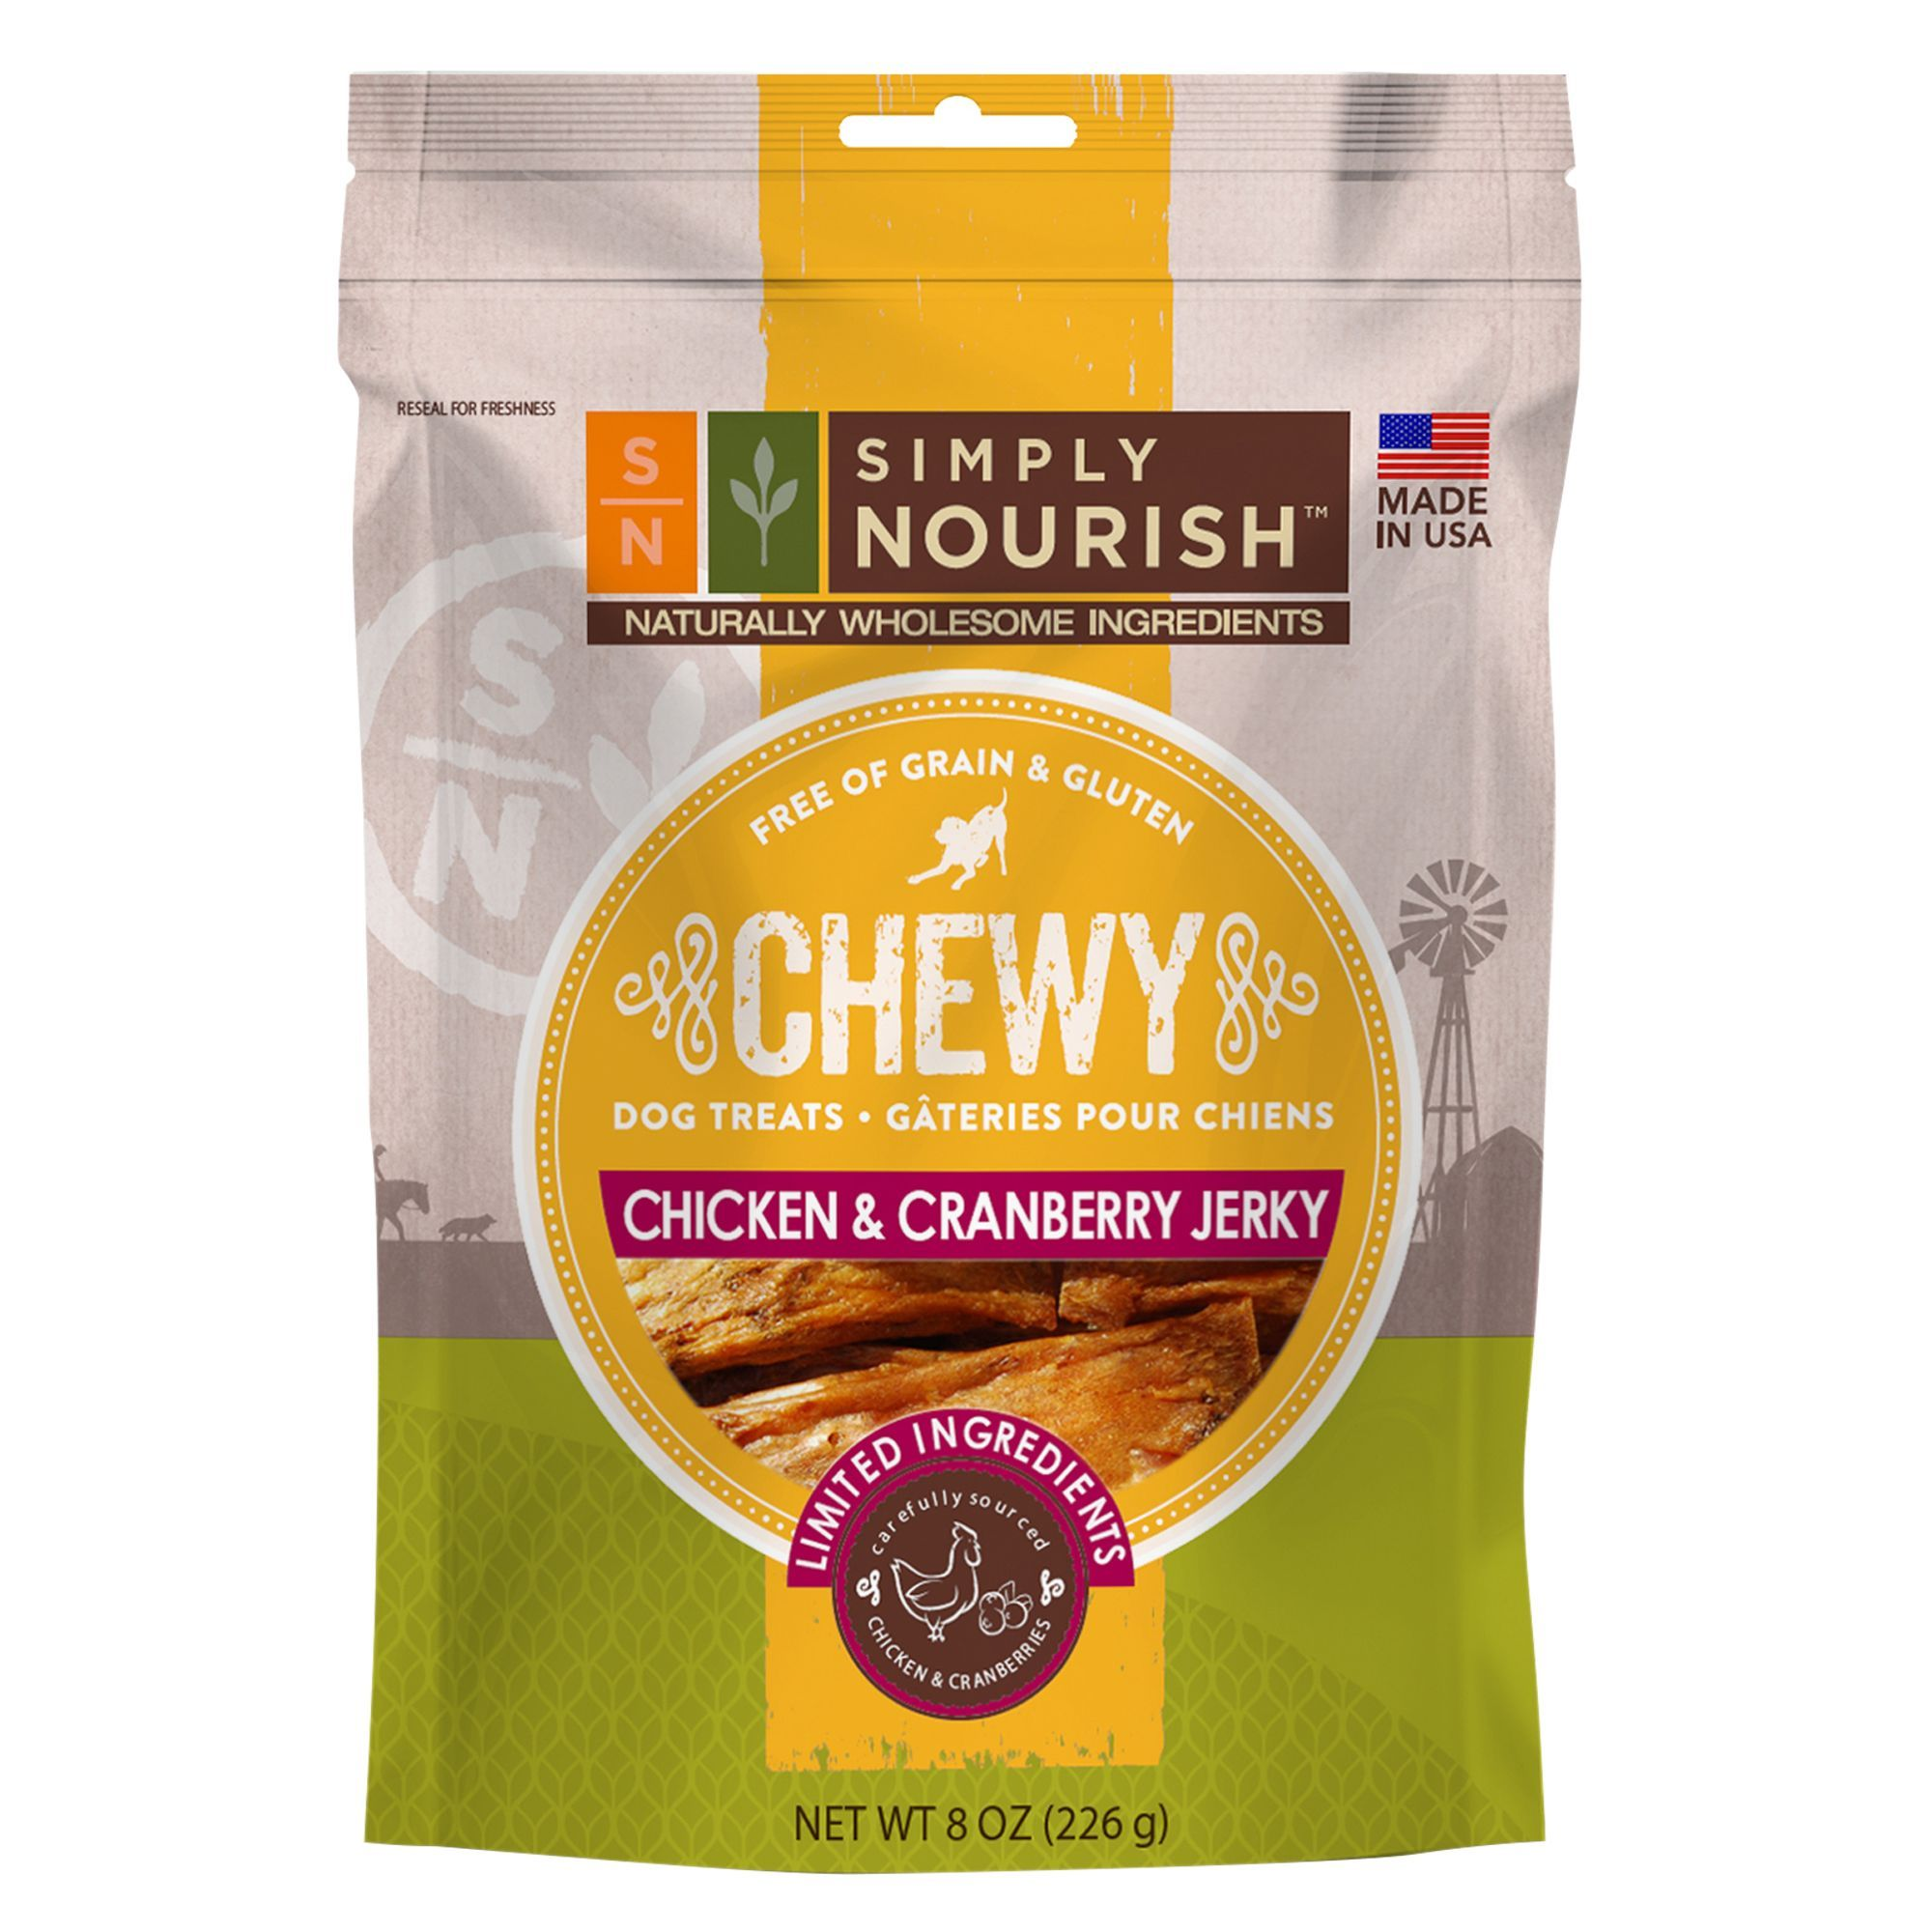 Simply Nourish Chewy Jerky Dog Treat Natural Grain Free